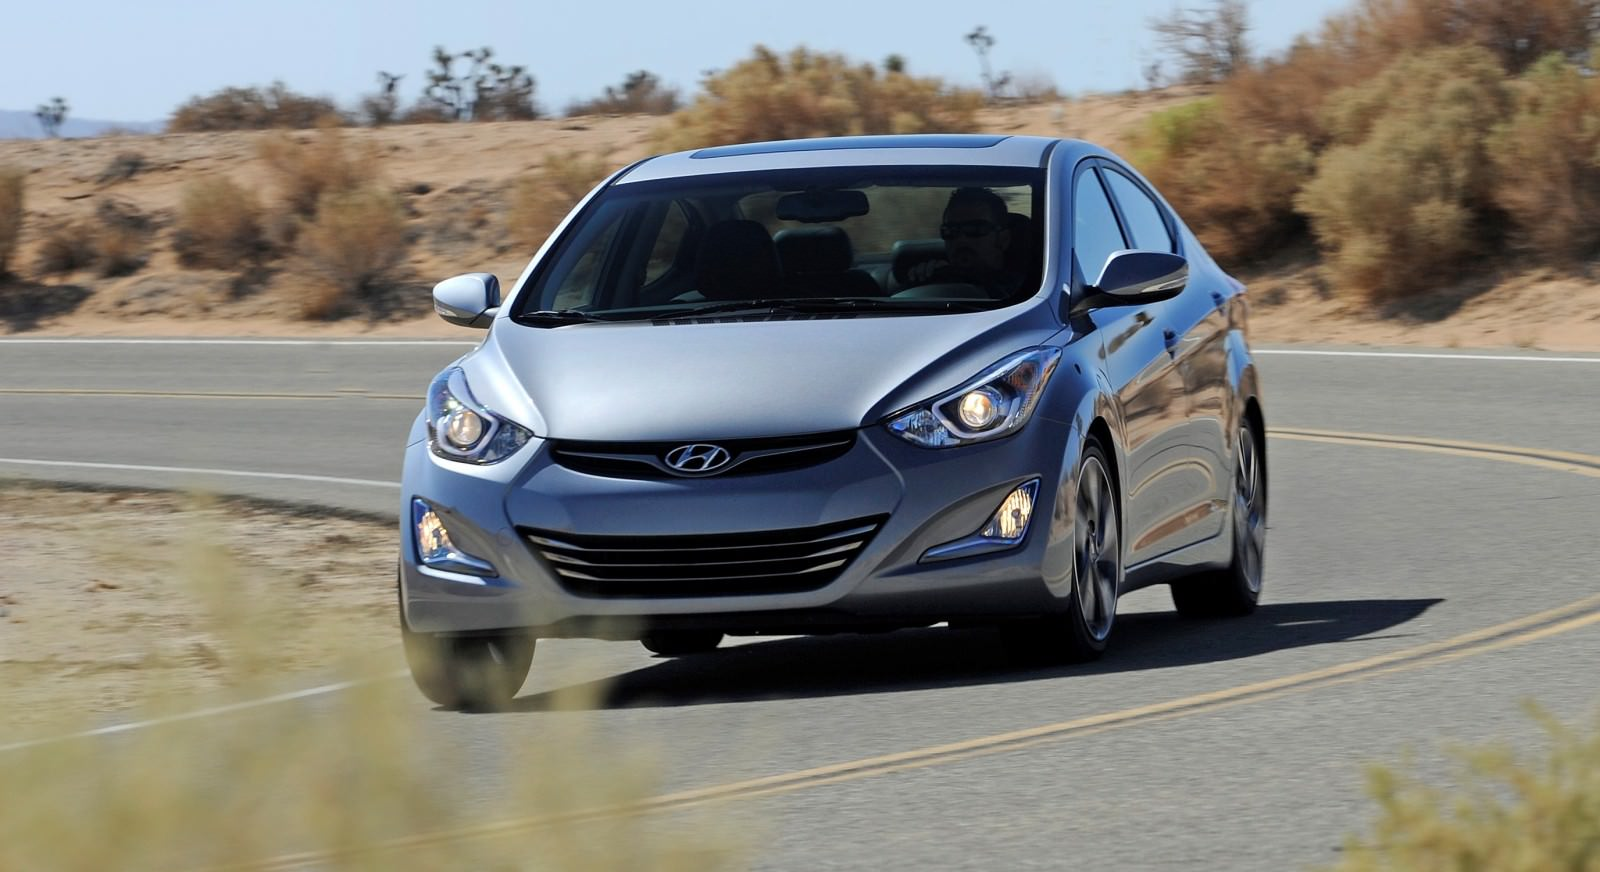 2015 Hyundai Elantra Sedan Brings Classy LED and Tech Updates  8